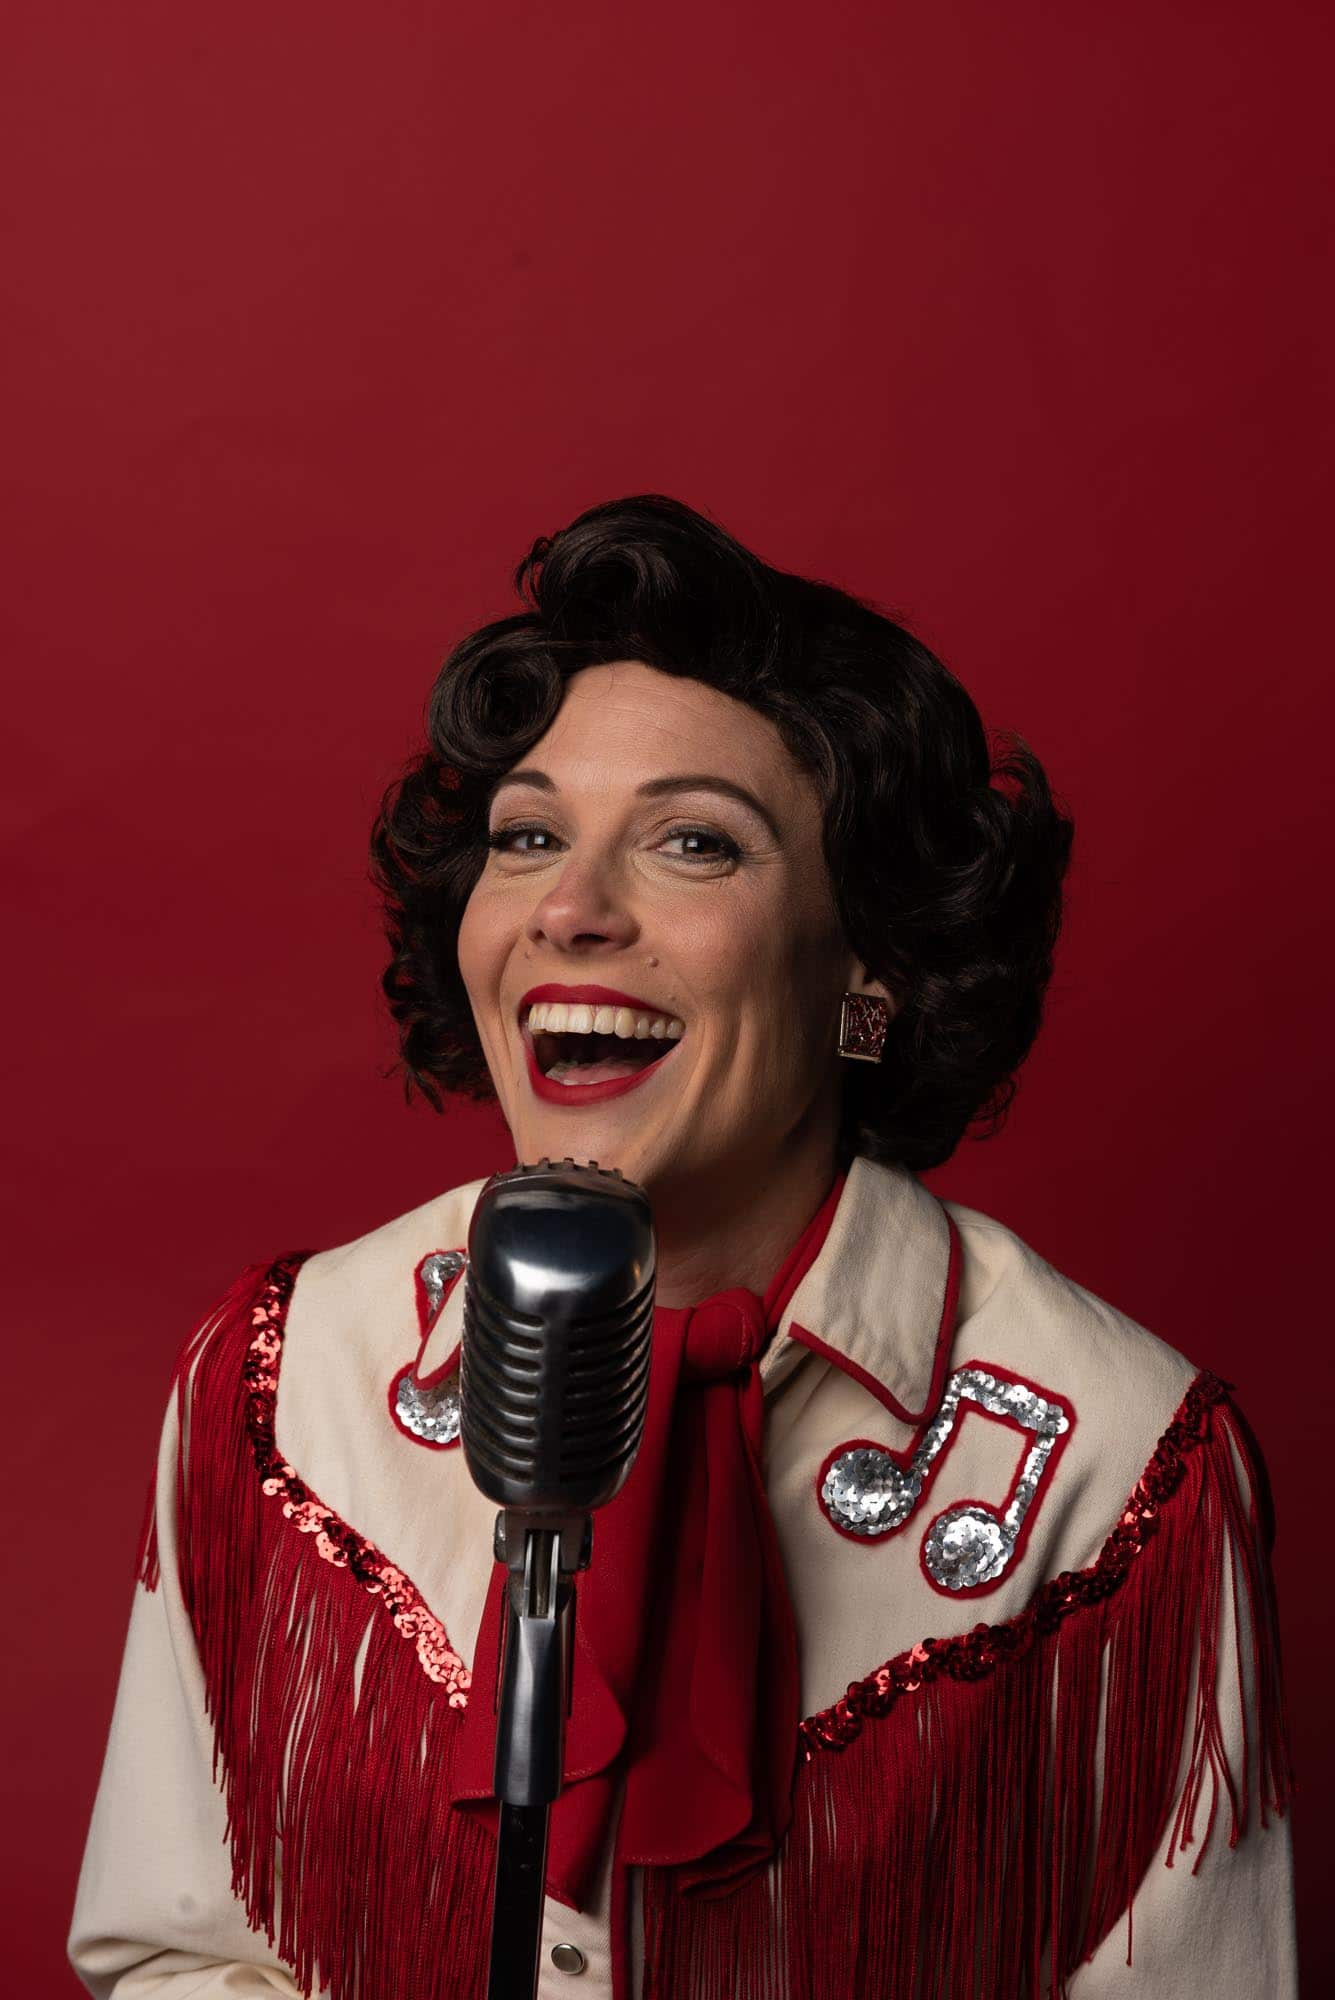 Patsy Cline Barter at the Moonlite